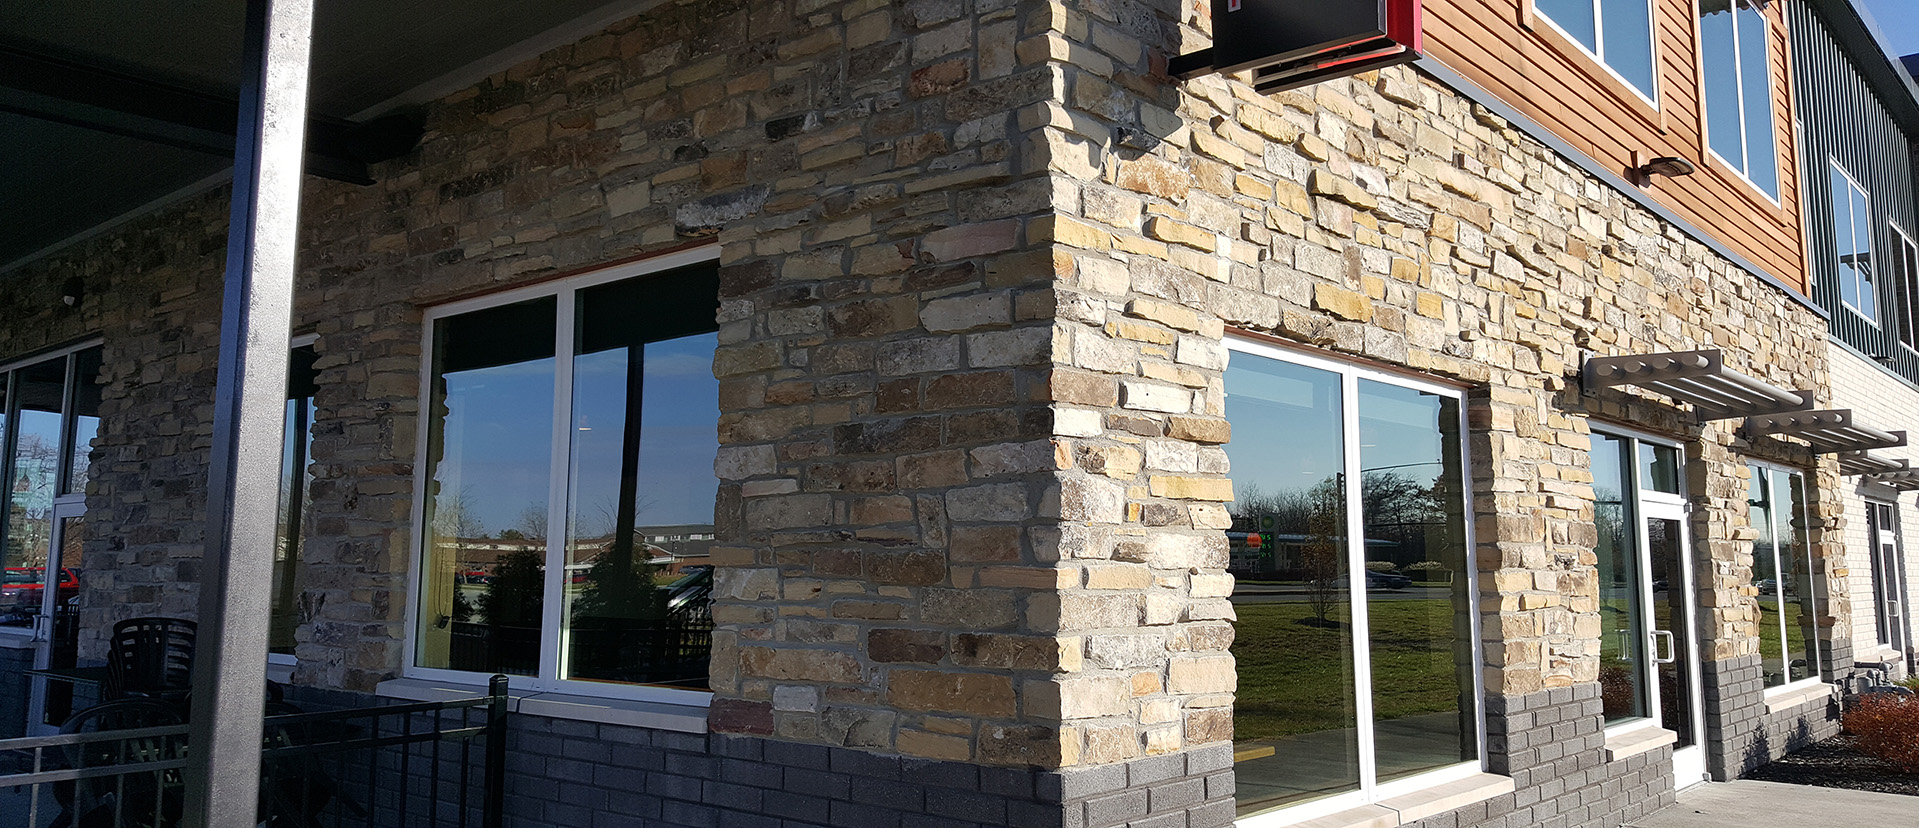 fireboulder_natural_stone_veneer_building_stone_tennessee_fieldstone_split_stack_sunset_indiana